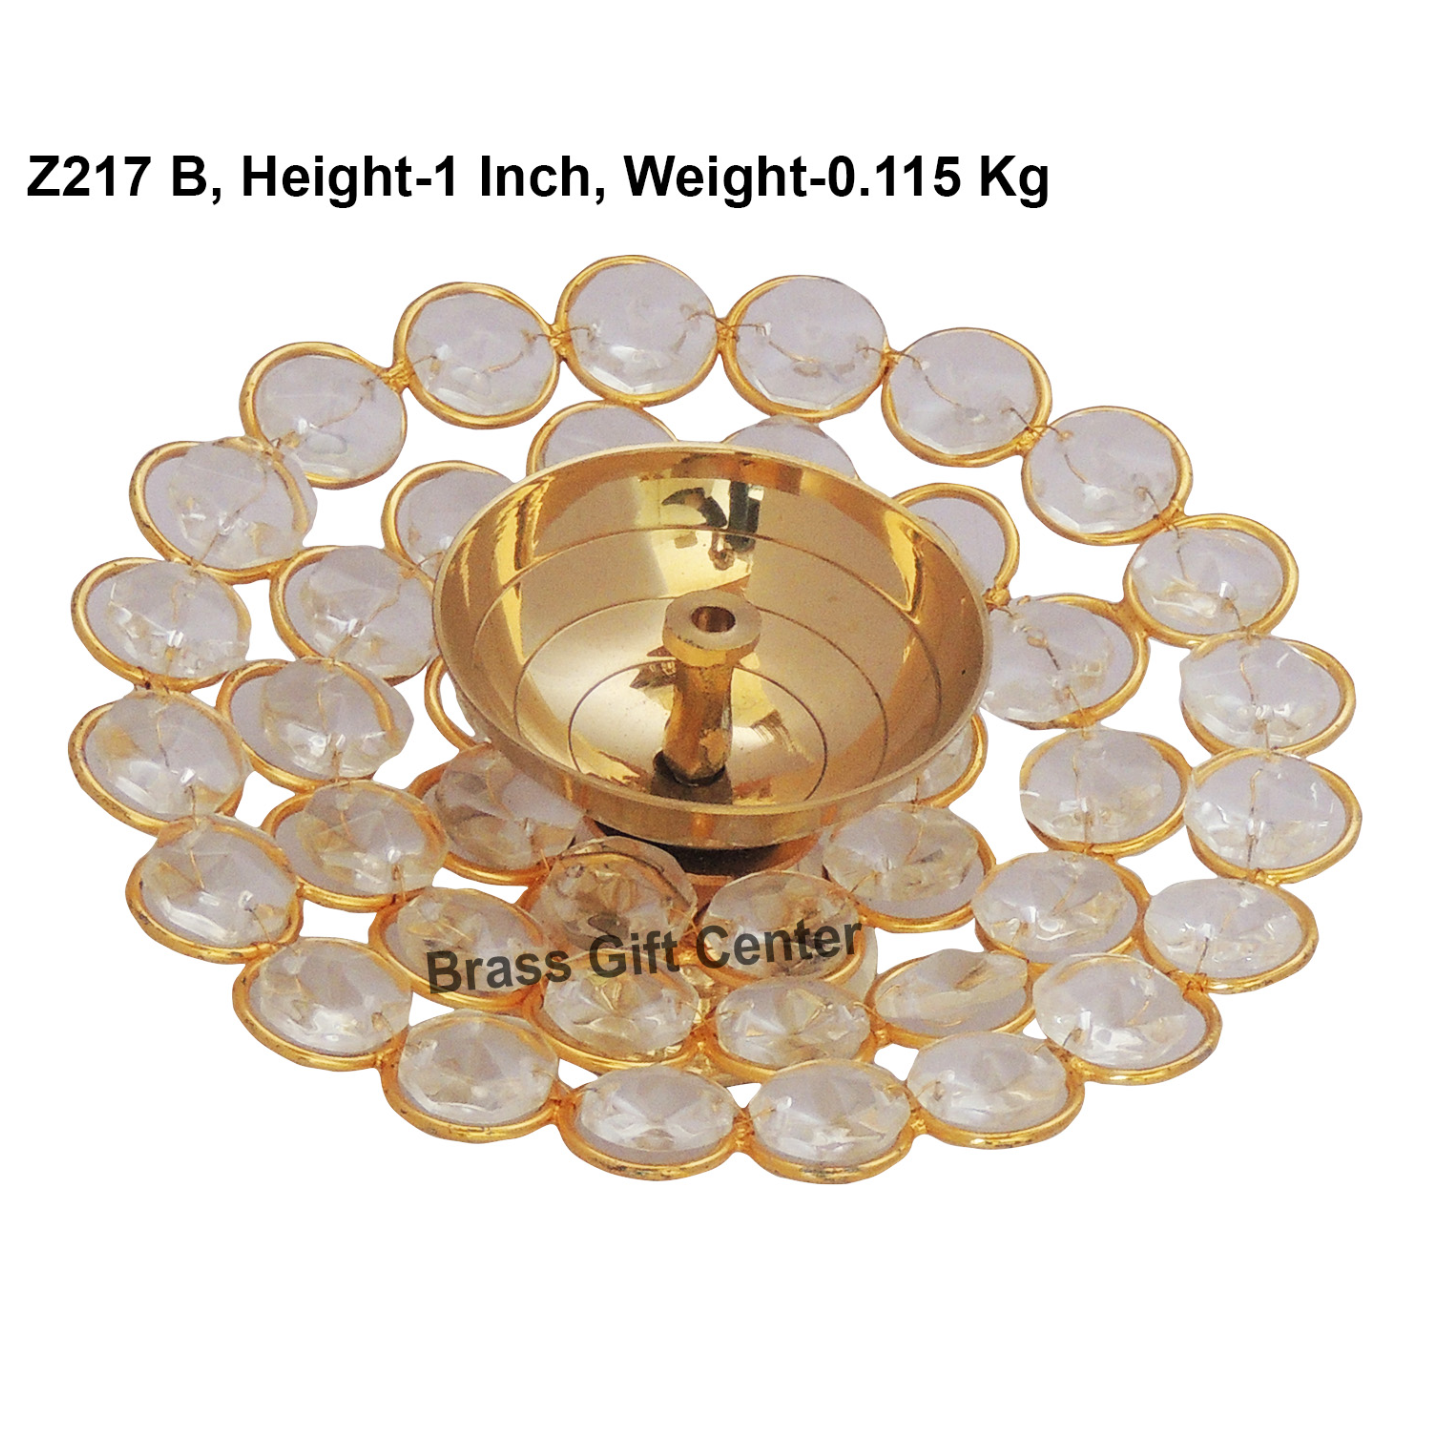 Brass Deepak With Crystal beads desing - 5 inch  (Z217 B)